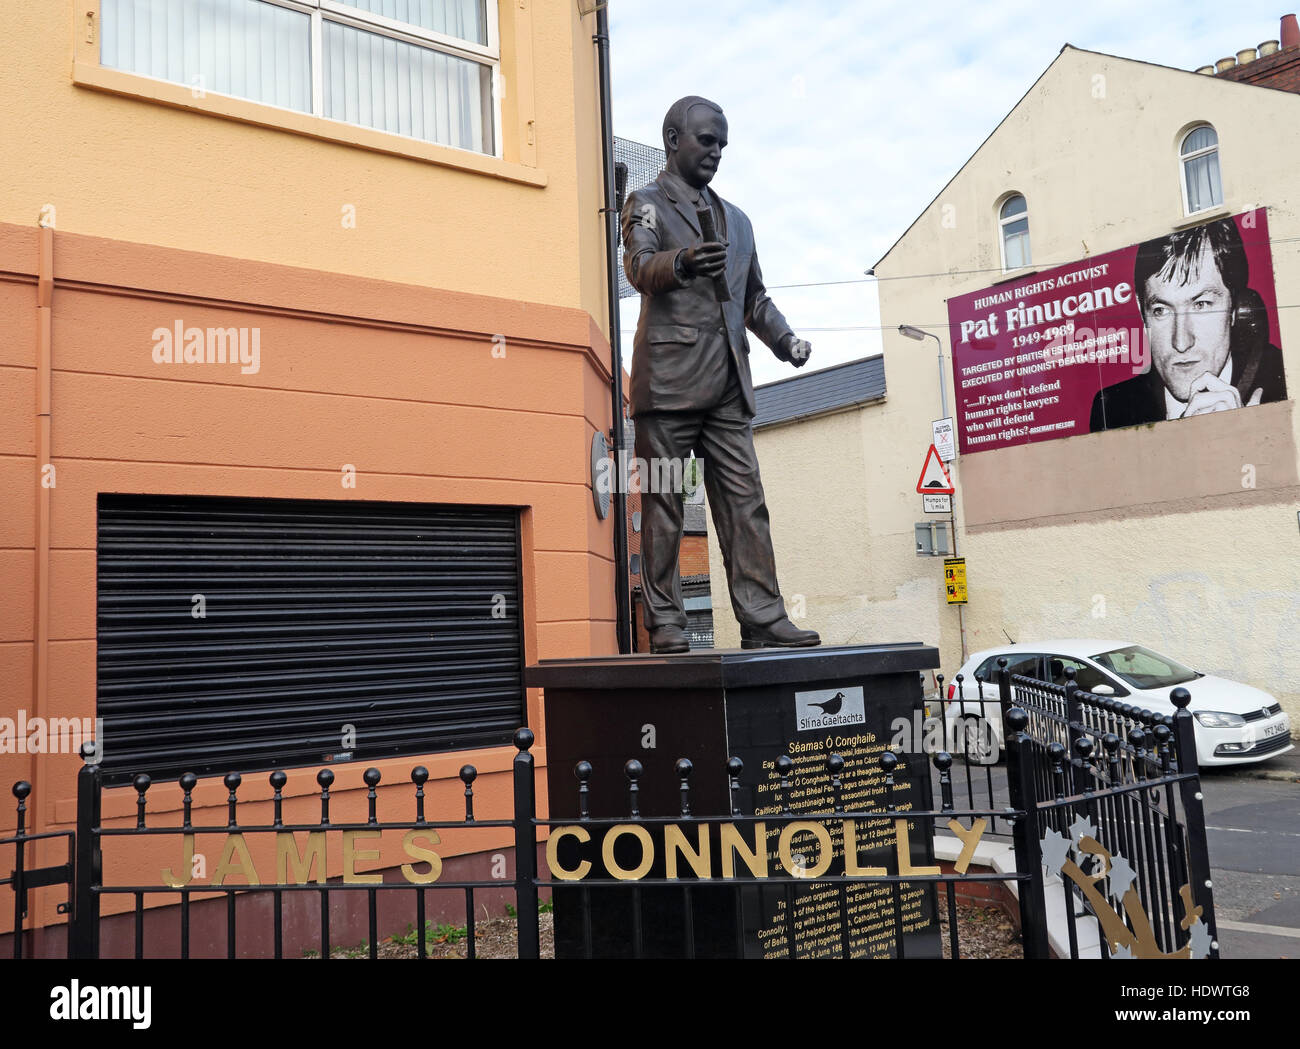 Road,painting,graffiti,resistance,IRA,peace,Northern Ireland,NI,UK,St,street,Eire,Irish,Republic,Irish Republic,conflict,Irish Republican Army,Political Change,Easter Rising,James Connolly,Seamus Ó Conghaile,outside,society,HQ,office,Erected,March,2016,James Connolly statue,bronze,Pat,Finucane,GoTonySmith,@HotpixUK,Tony,Smith,UK,GB,Great,Britain,United,Kingdom,Irish,British,Ireland,problem,with,problem with,issue with,NI,Northern,Northern Ireland,Belfast,City,Centre,Art,Artists,the,troubles,The Troubles,Good Friday Agreement,Peace,honour,painting,wall,walls,tribute,republicanism,Fight,Justice,West,Beal,feirste,martyrs,social,tour,tourism,tourists,urban,six,counties,6,backdrop,county,Antrim,occupation,good,Friday,agreement,peace,reconciliation,IRA,terror,terrorists,genocide,Buy Pictures of,Buy Images Of,Images of,Stock Images,Tony Smith,United Kingdom,Great Britain,British Isles,republican cause